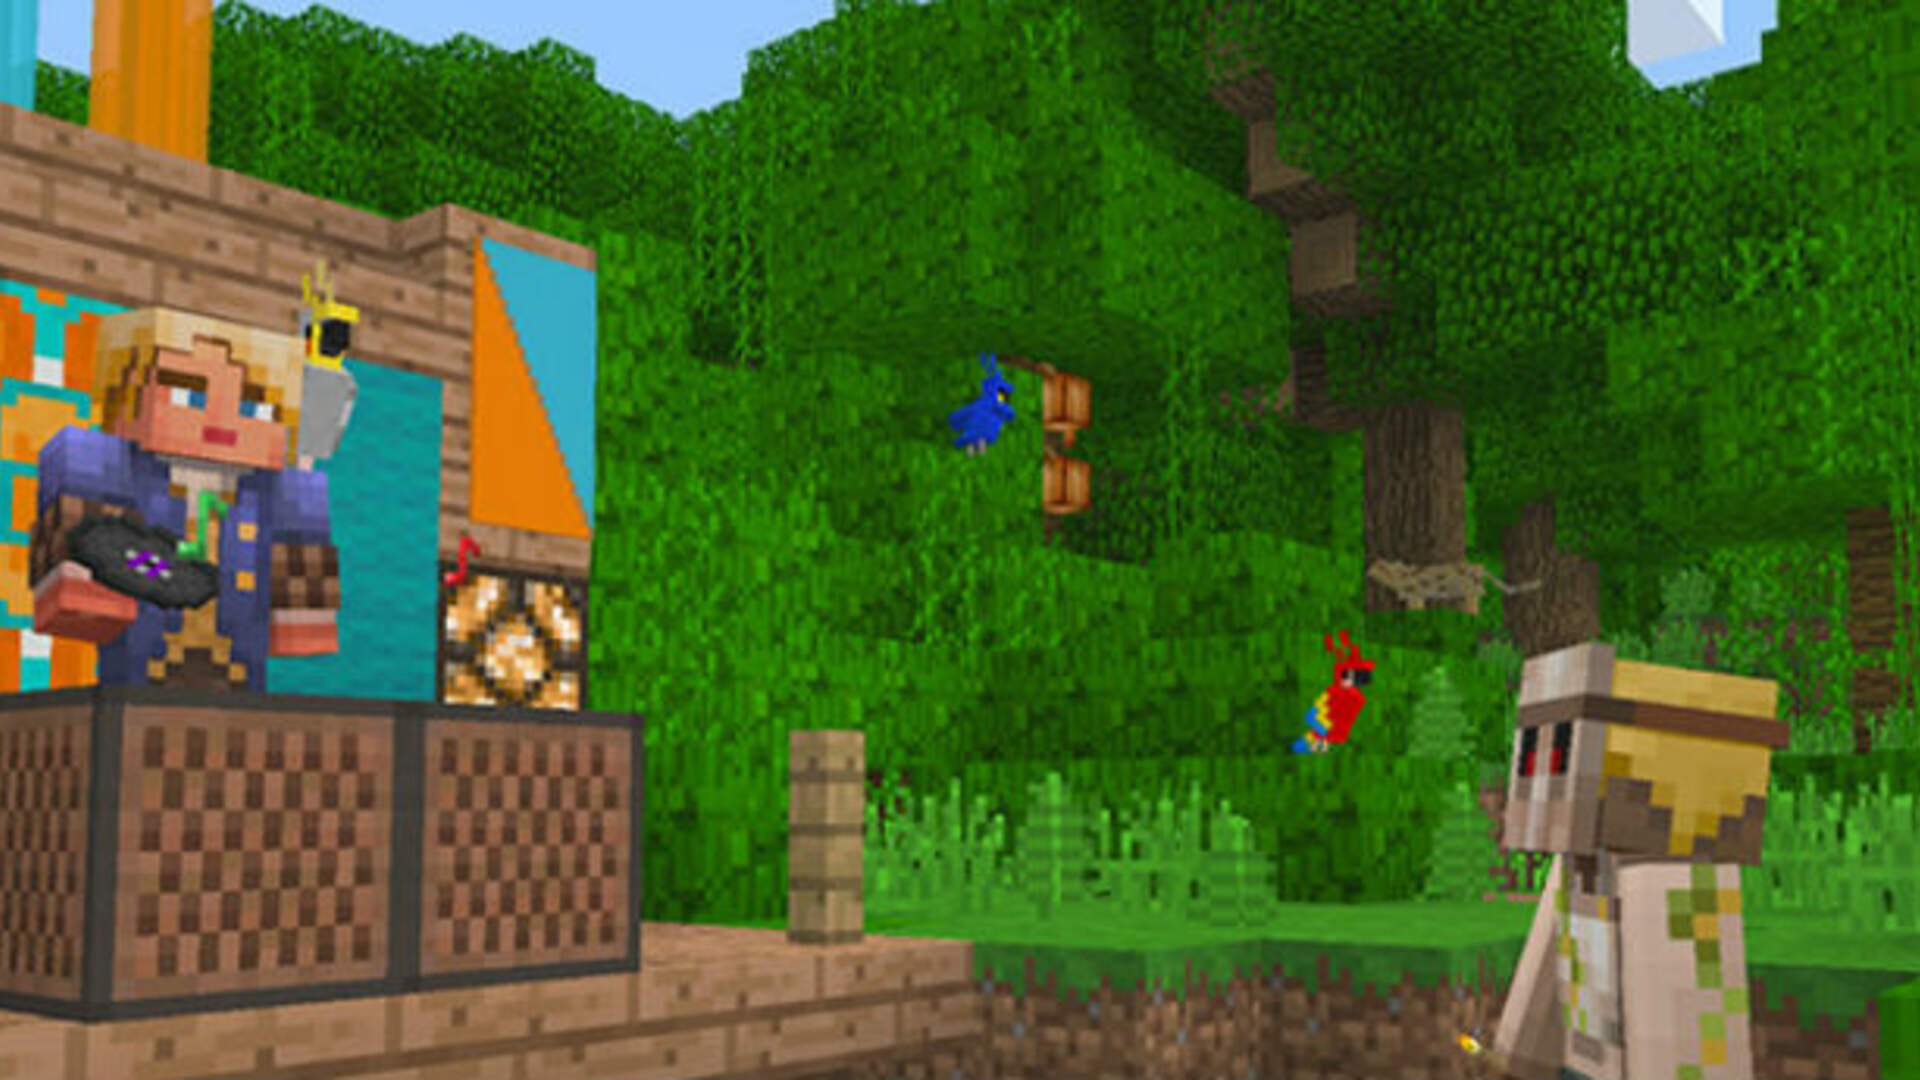 """Here's How to Become a Beta Tester for Minecraft's Cross-Platform """"Better Together"""" Feature"""